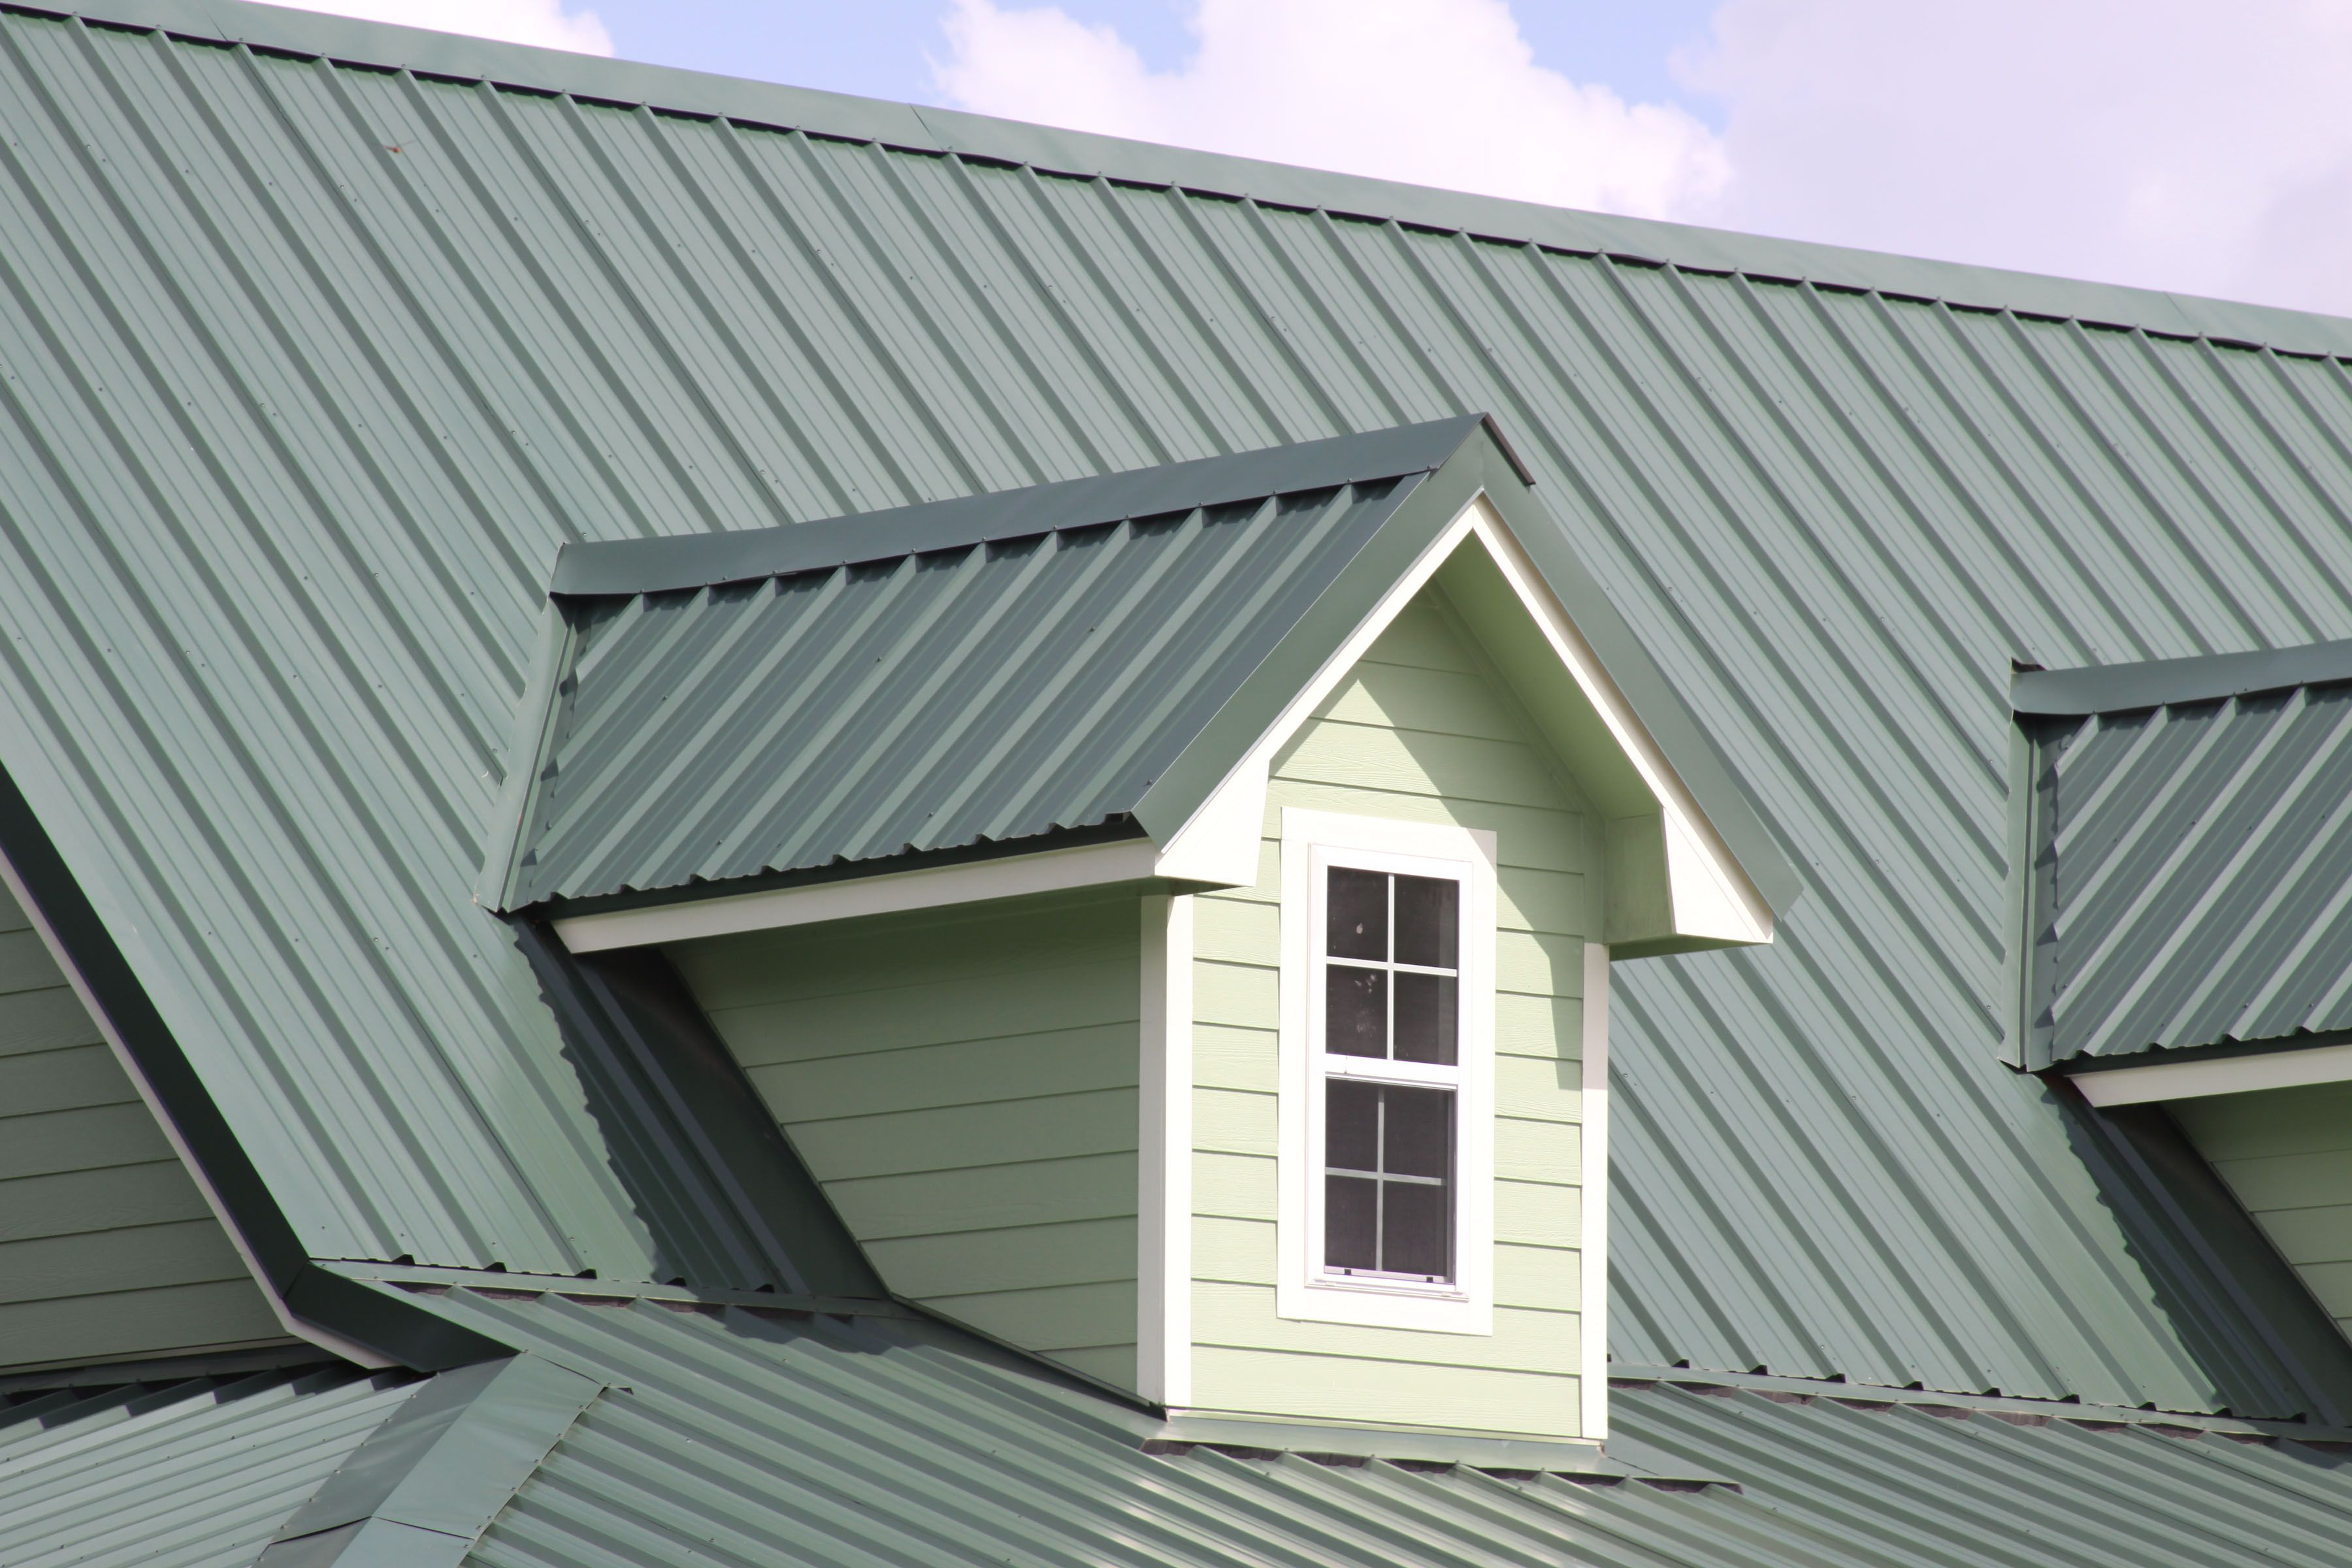 Architectural Design The House Roof Dormer Windowshouse Roof